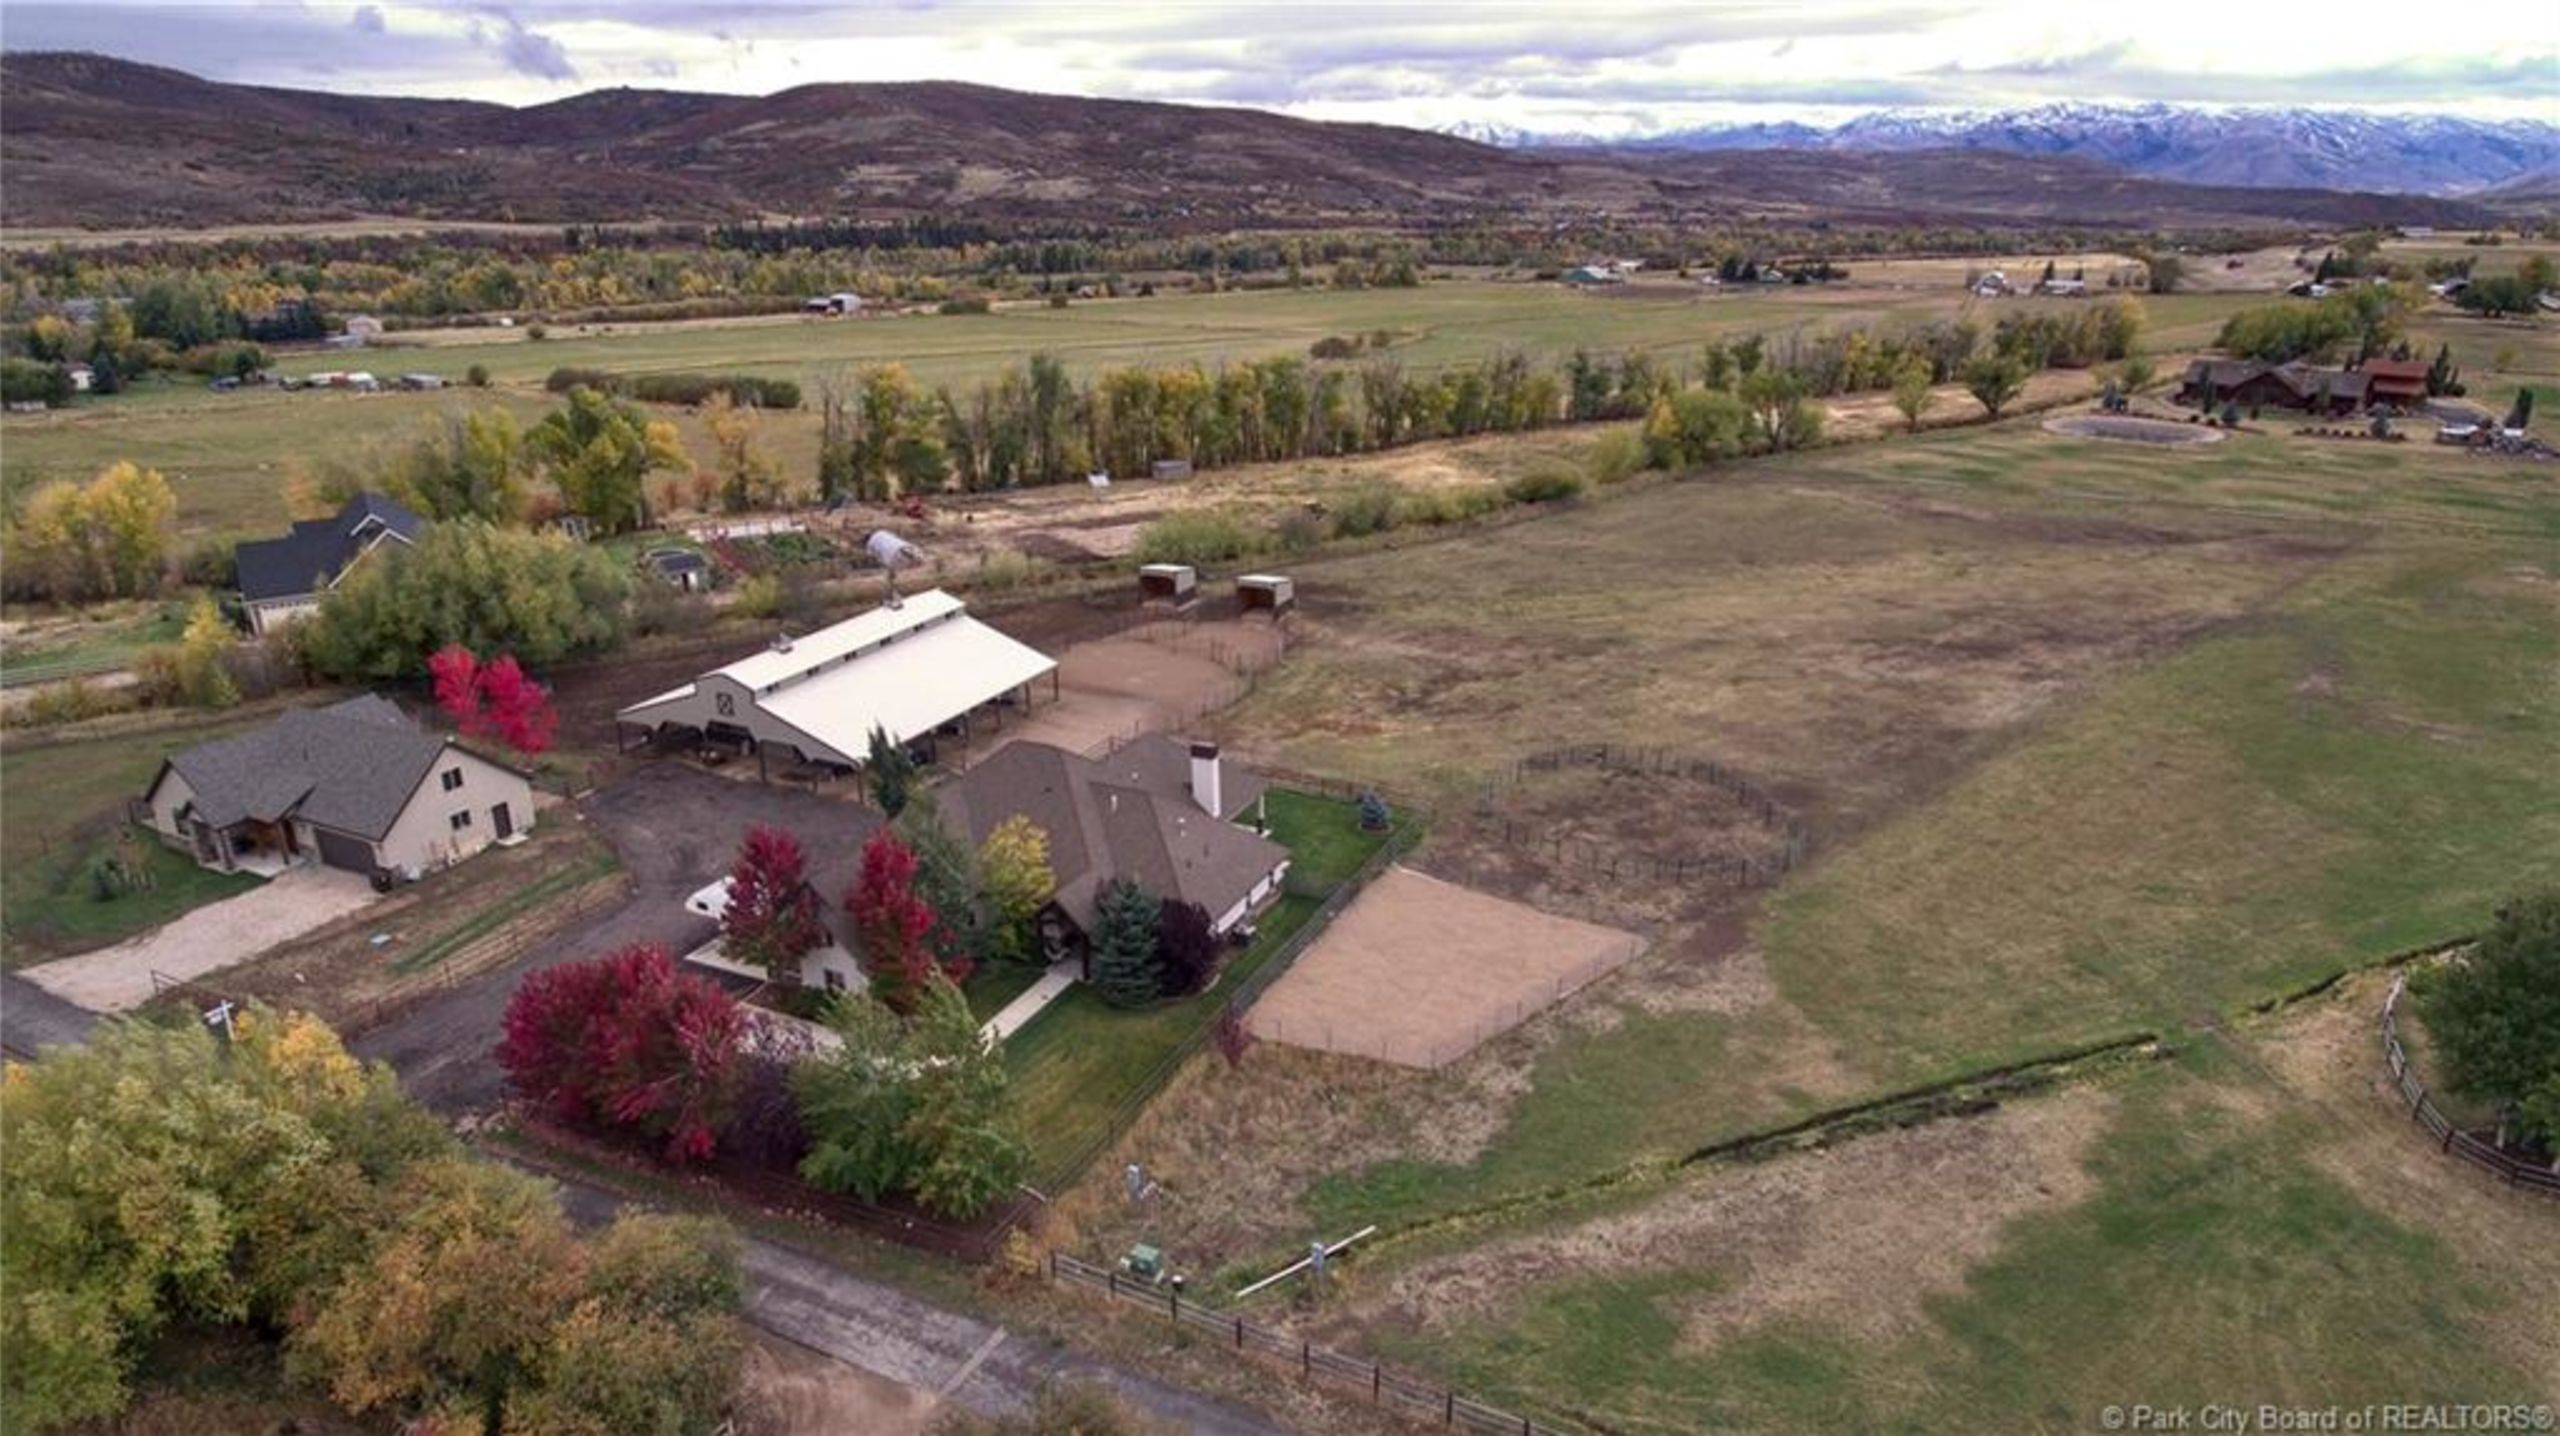 2875 ELK MEADOWS - Kamas